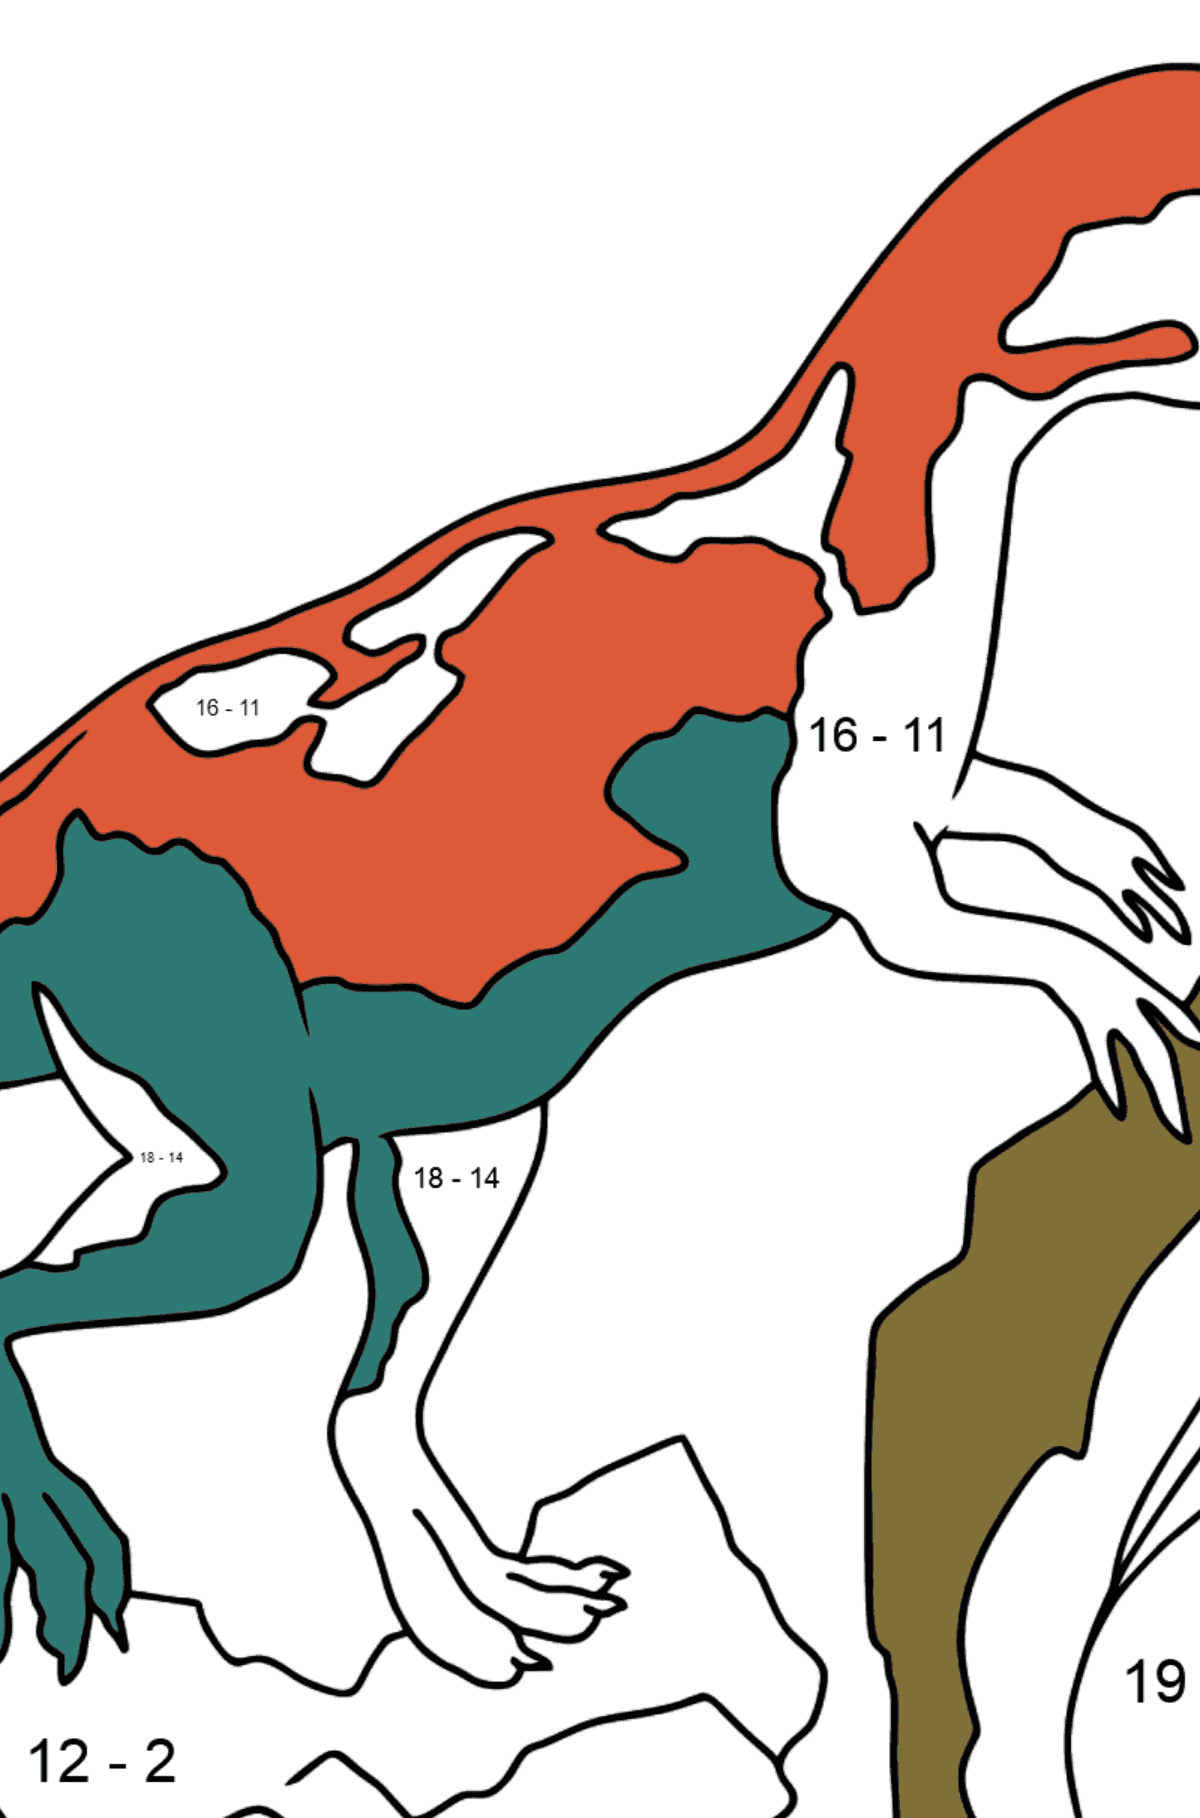 Coloring Page - Allosaurus - Jurassic Dinosaur - Math Coloring - Subtraction for Kids